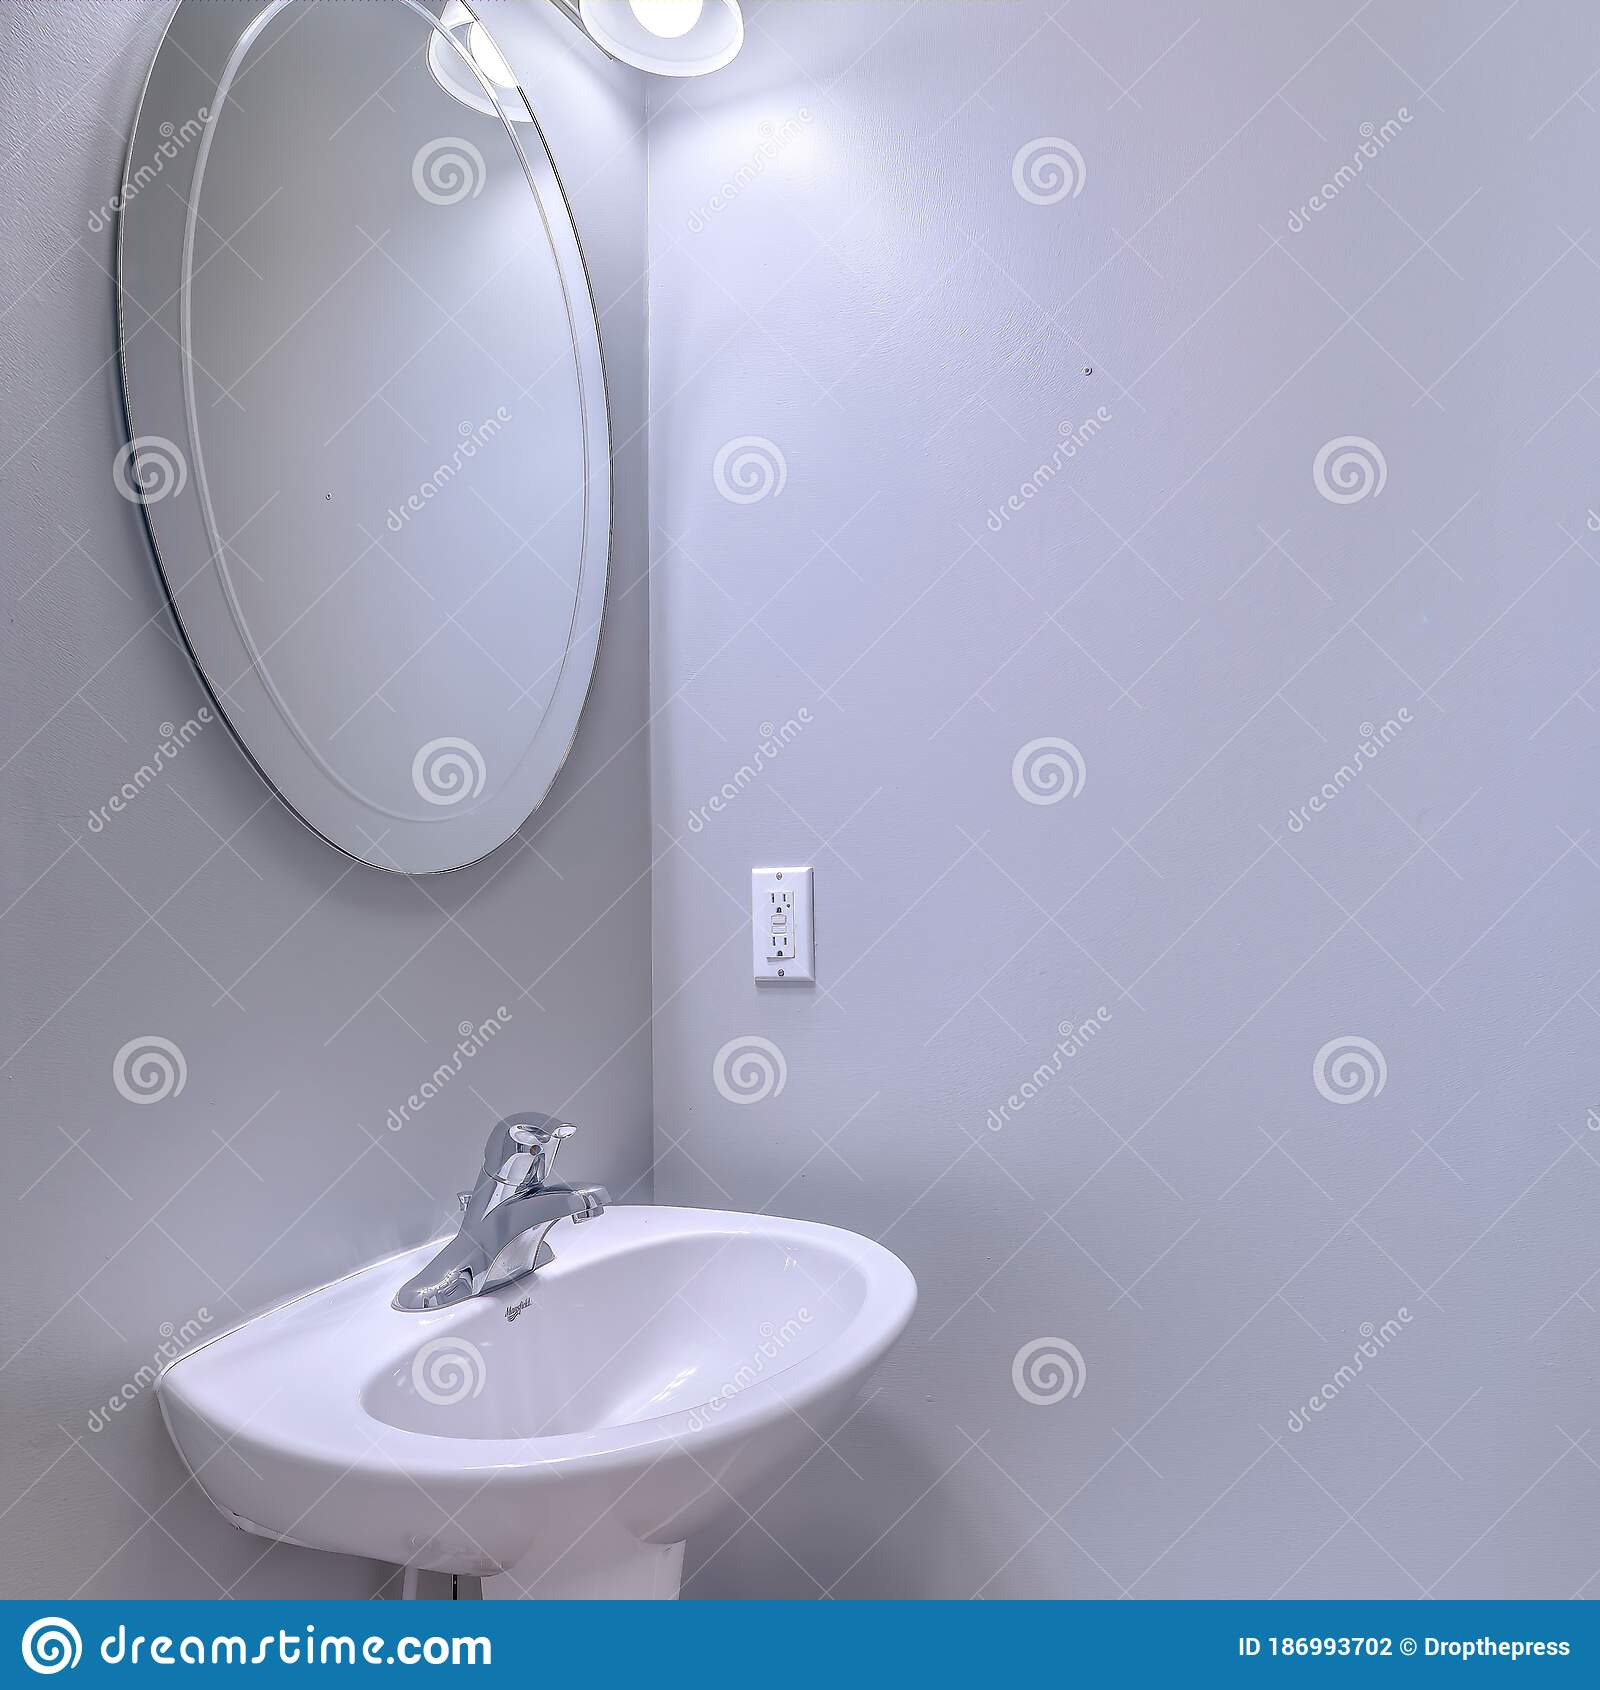 square bathroom interior with wall light and oval mirror over stand alone pedestal sink stock photo image of architectural toilat 186993702